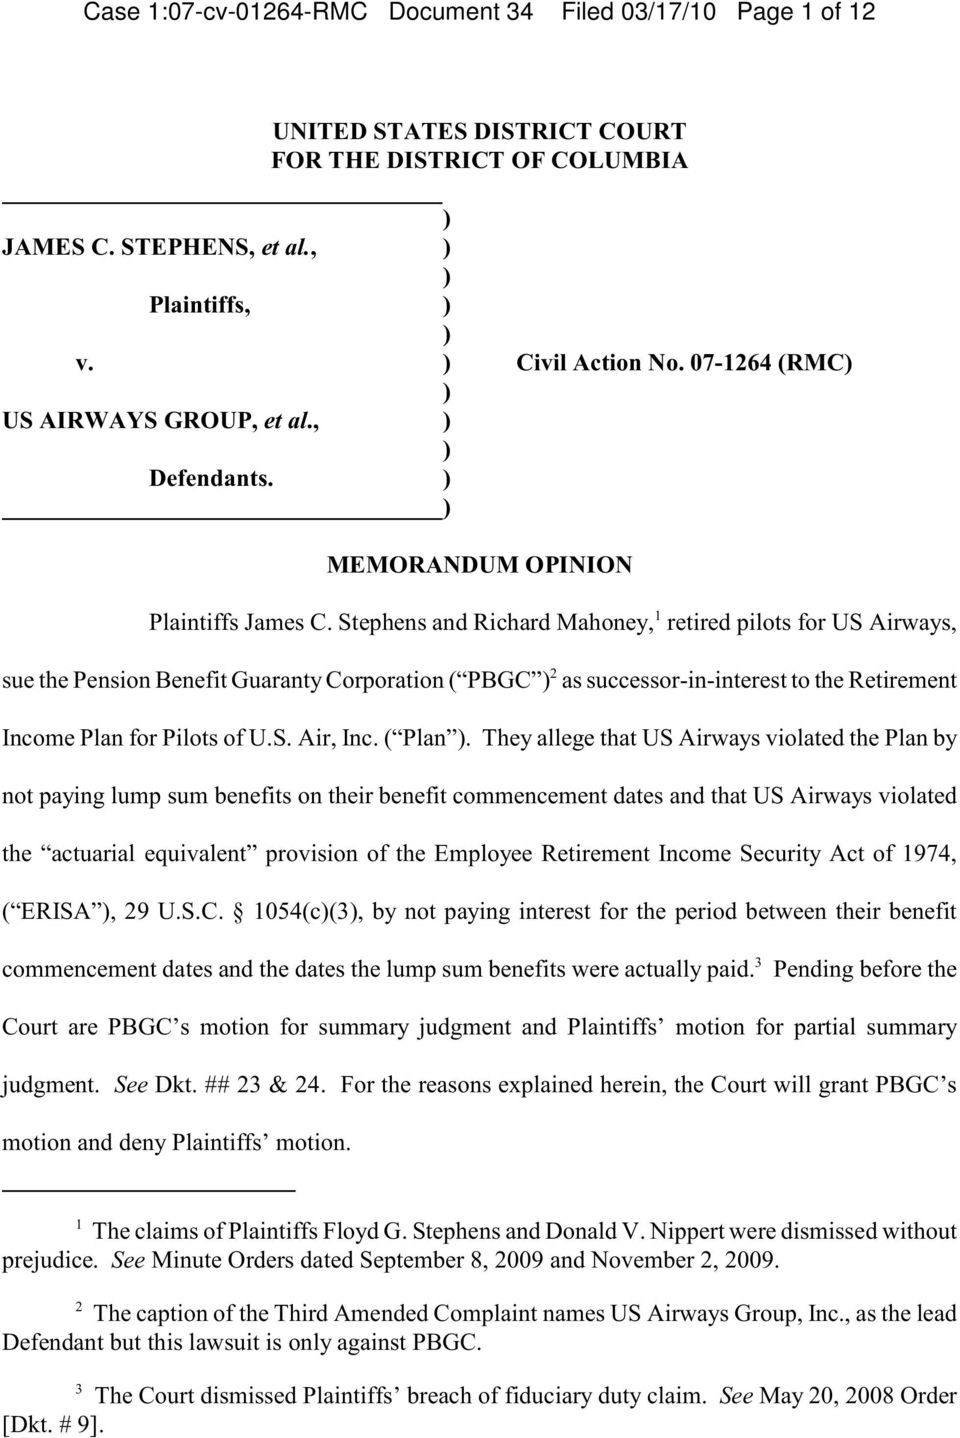 Stephens and Richard Mahoney, retired pilots for US Airways, sue the Pension Benefit Guaranty Corporation ( PBGC 2 as successor-in-interest to the Retirement Income Plan for Pilots of U.S. Air, Inc.